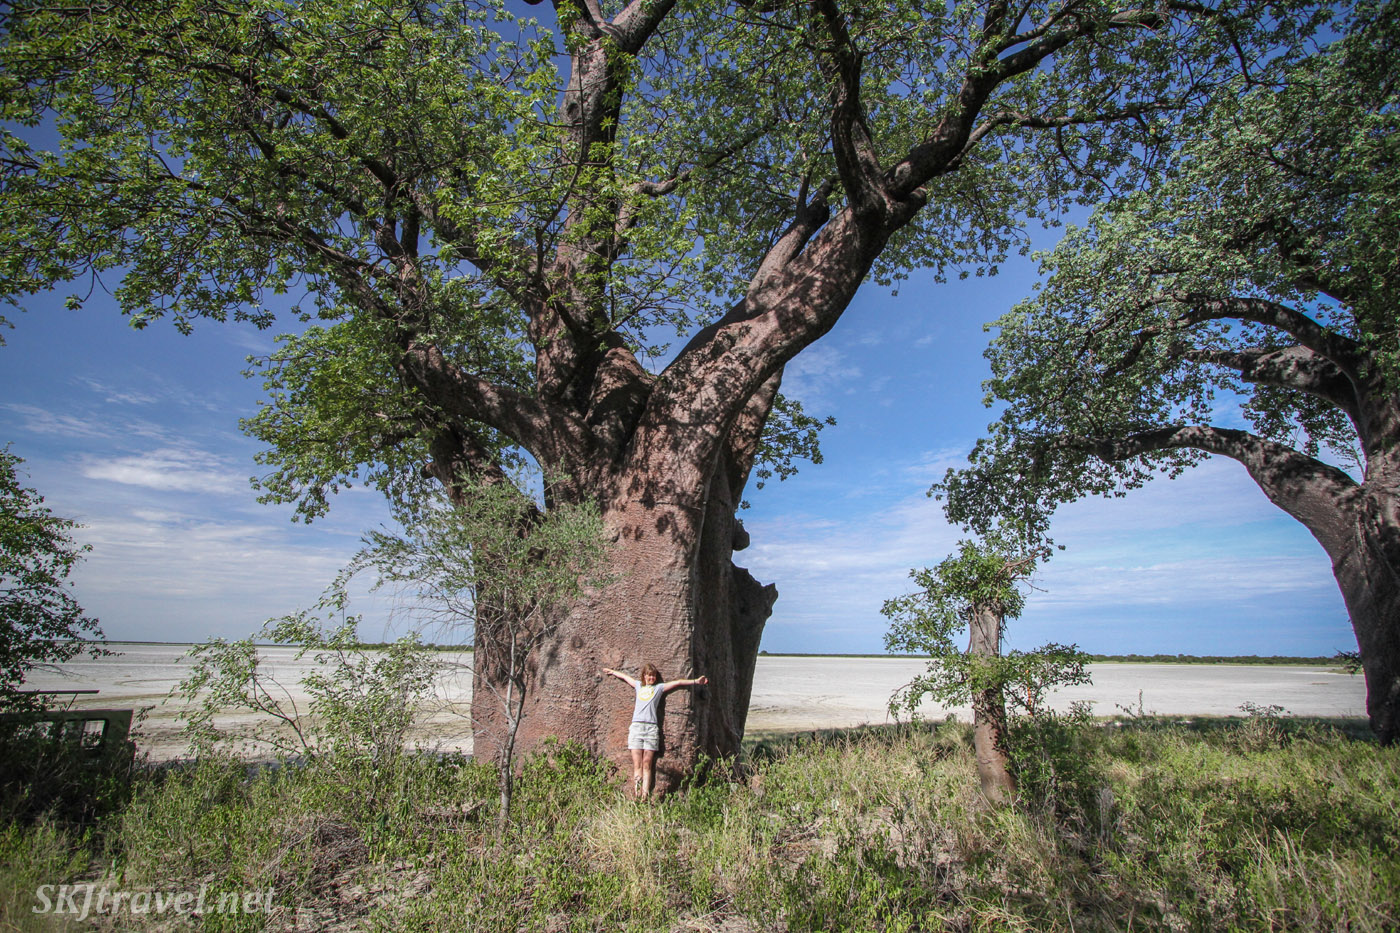 Shara dwarfed by baobab tree in Baines Baobabs, Nxai Pan, Botswana.